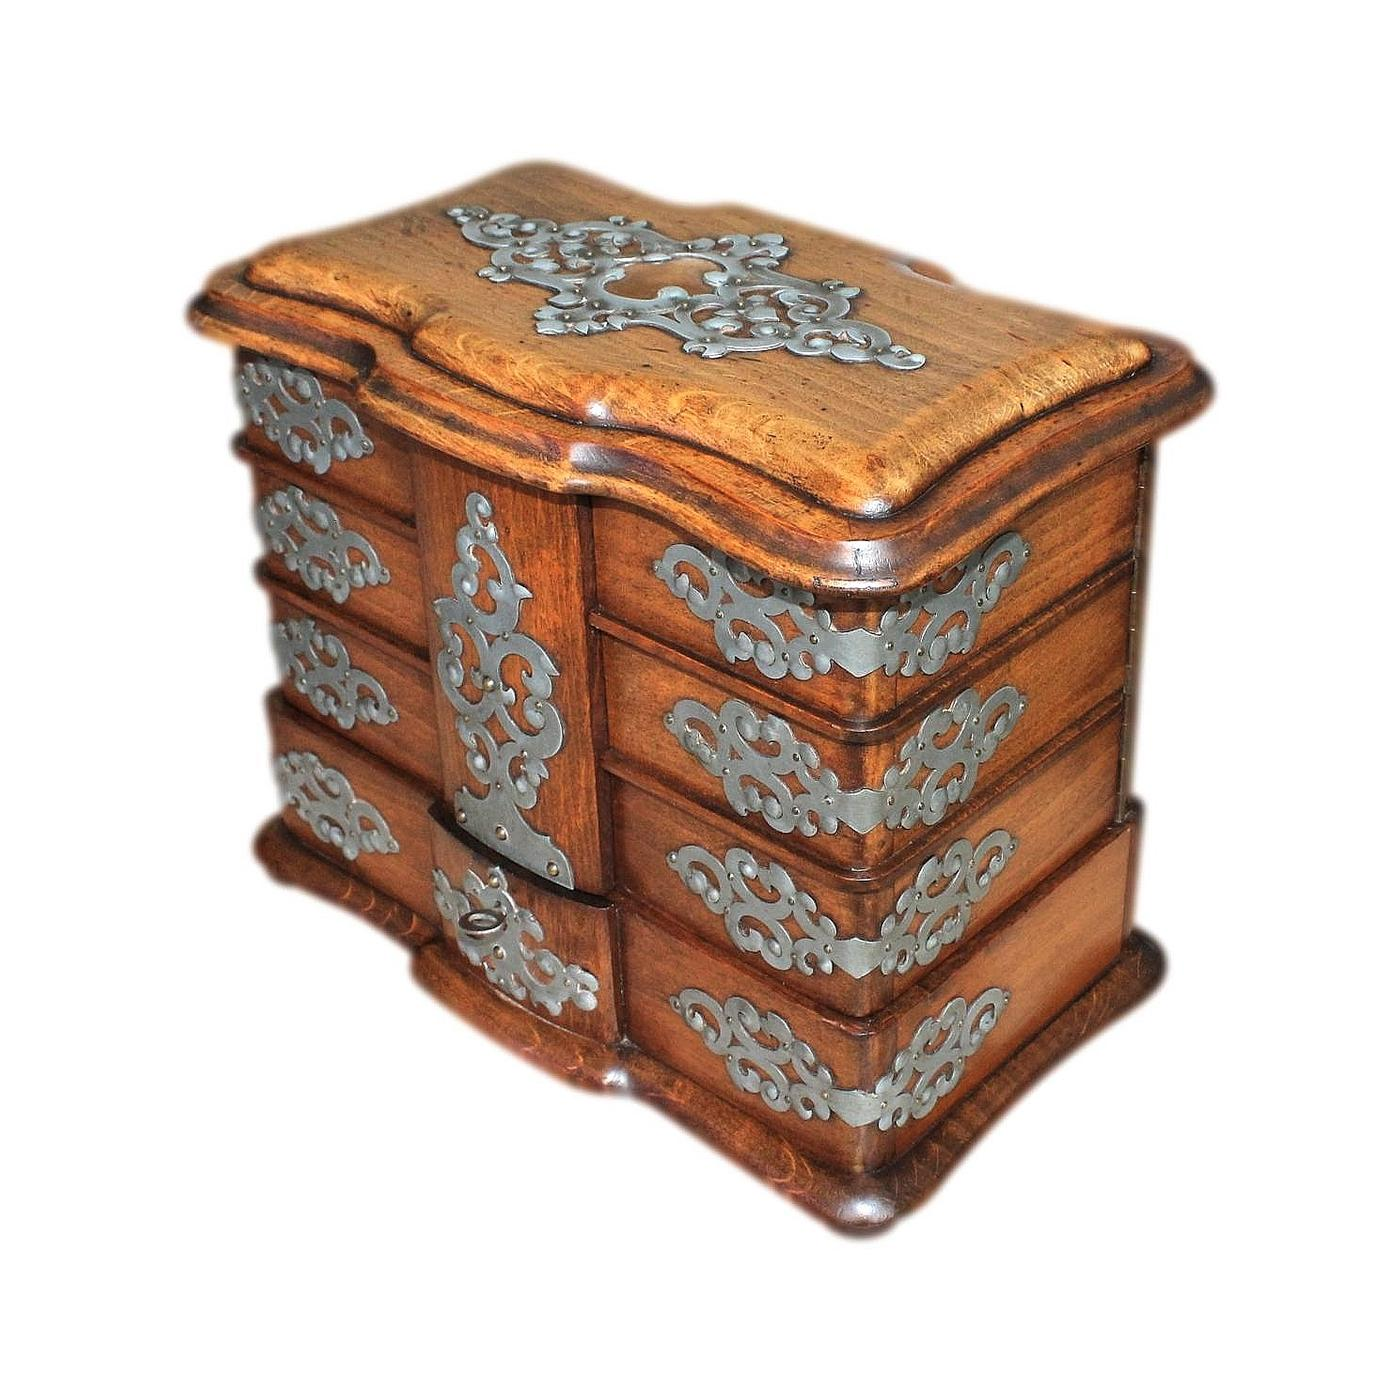 Superb Large Italian Multi Compartment Antique Jewellery Box